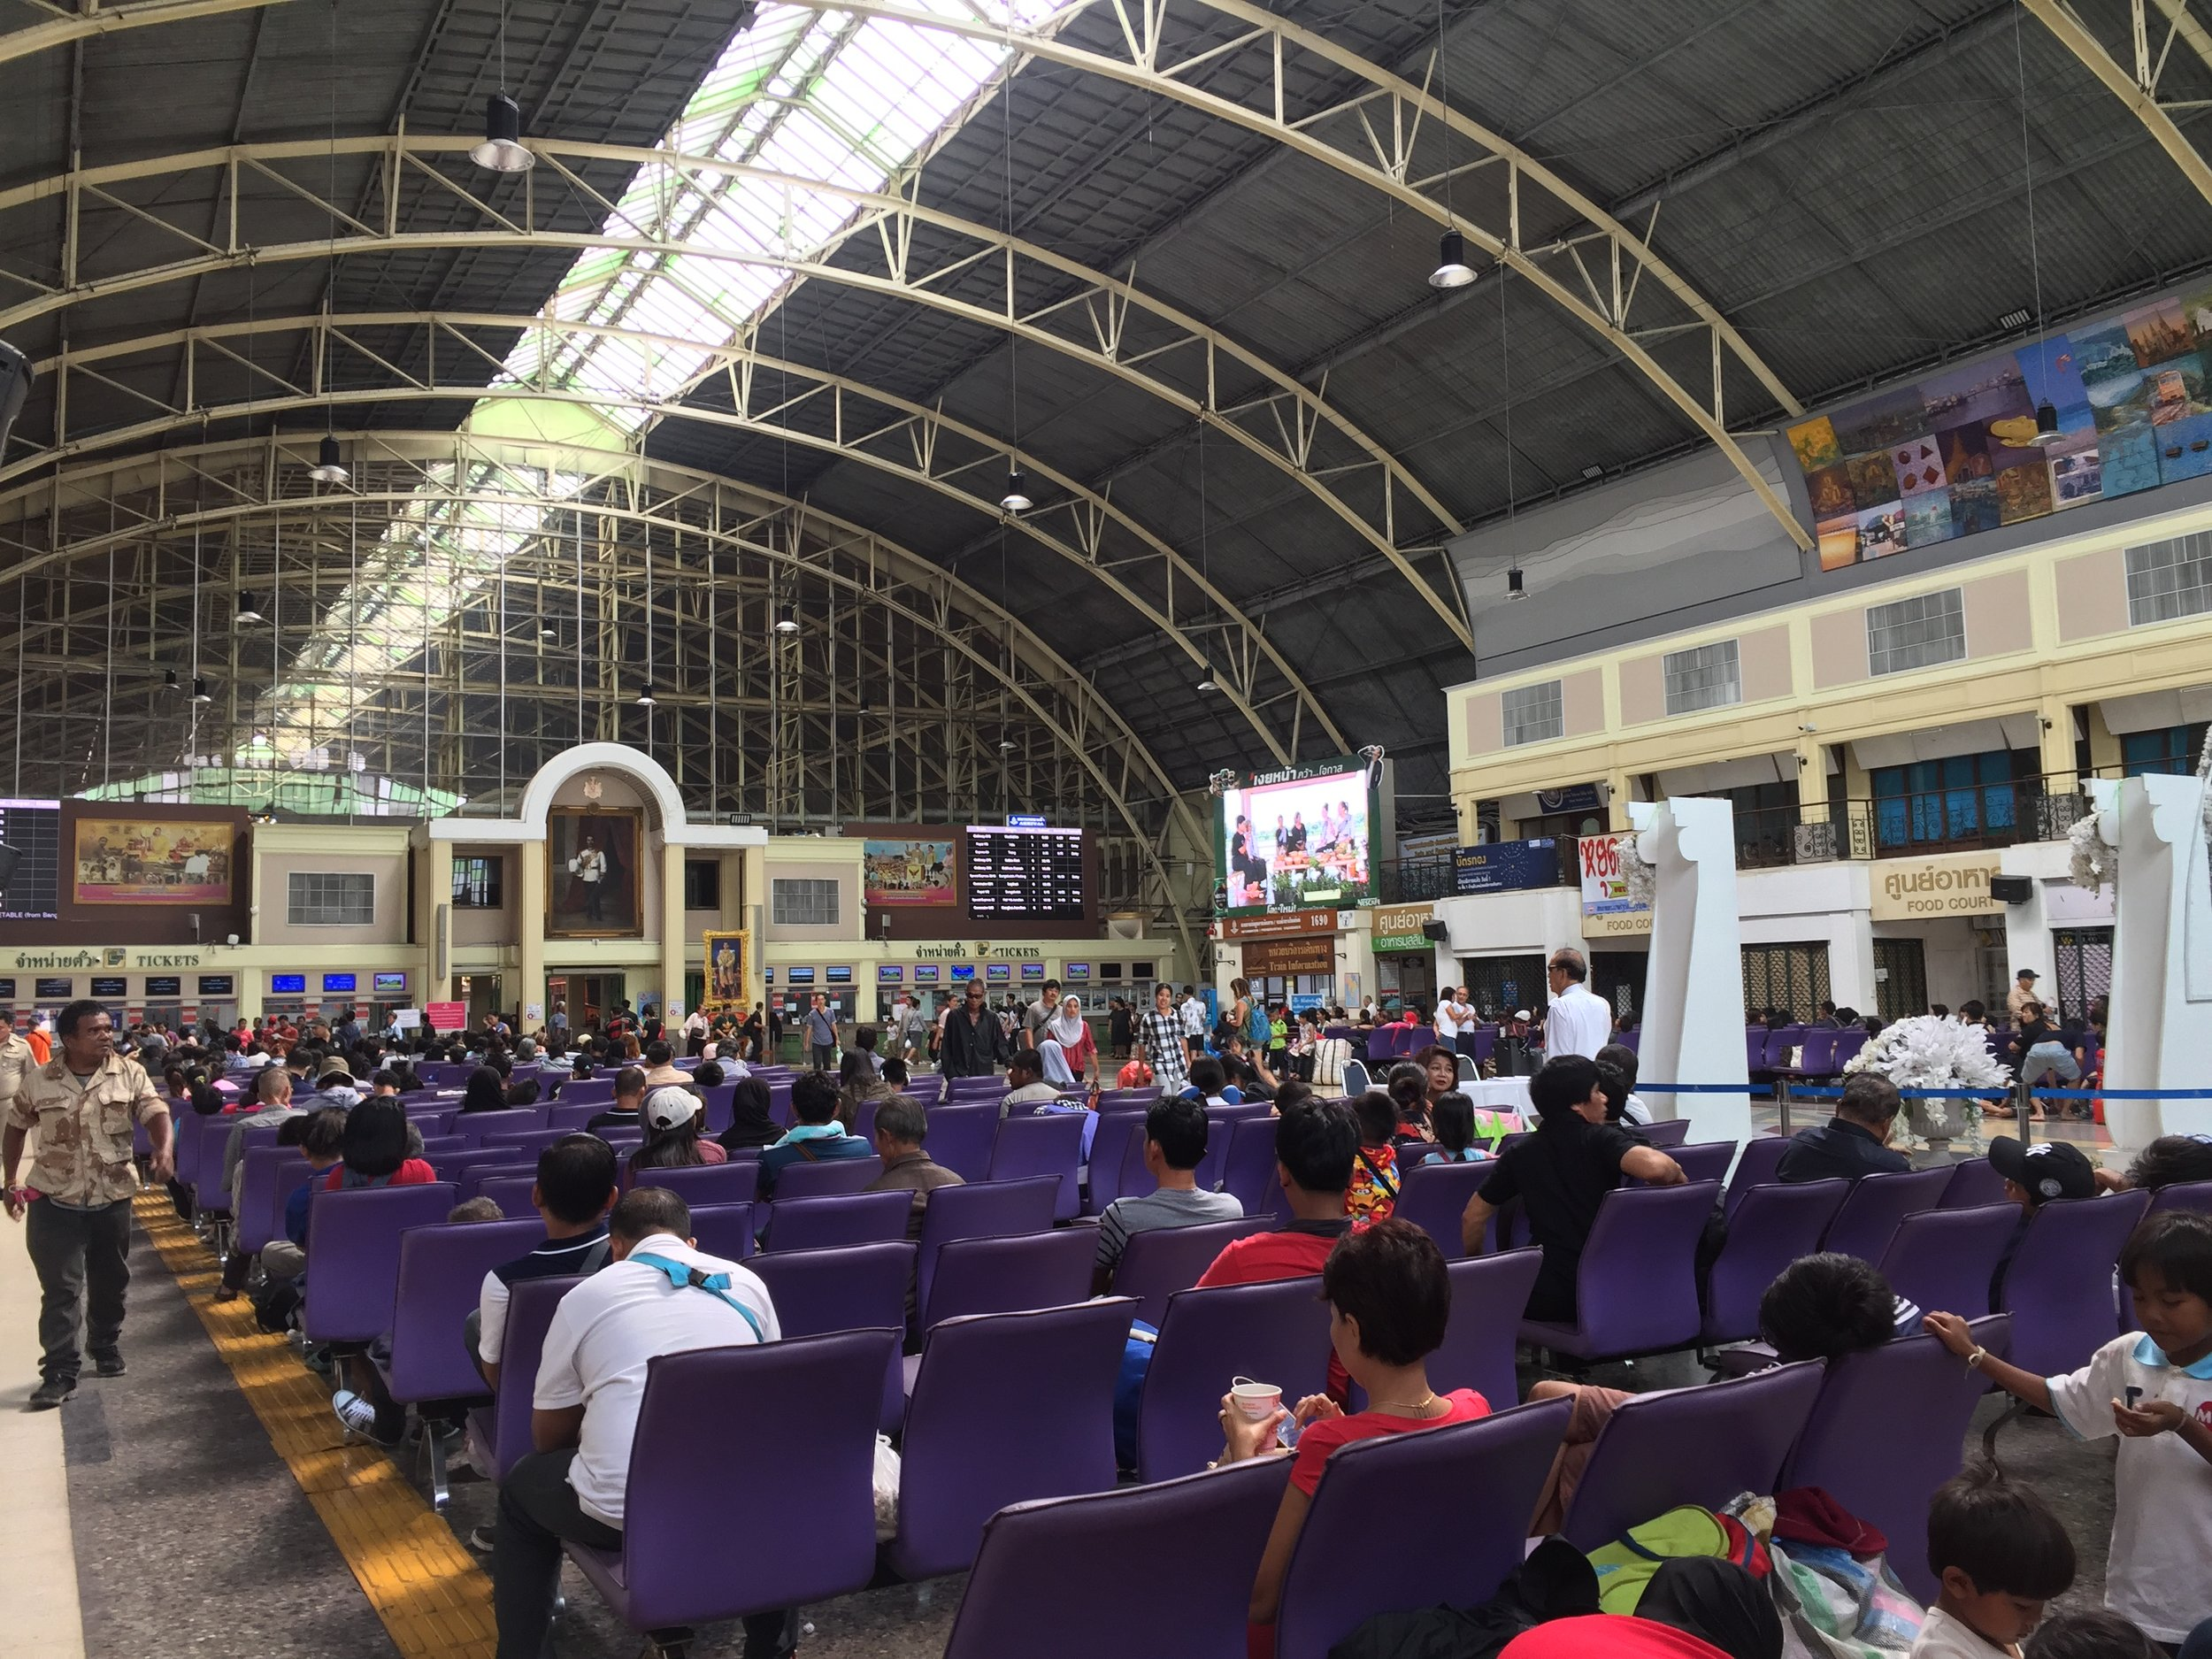 inside the Bangkok Railway Station, or Hua Lamphong Station